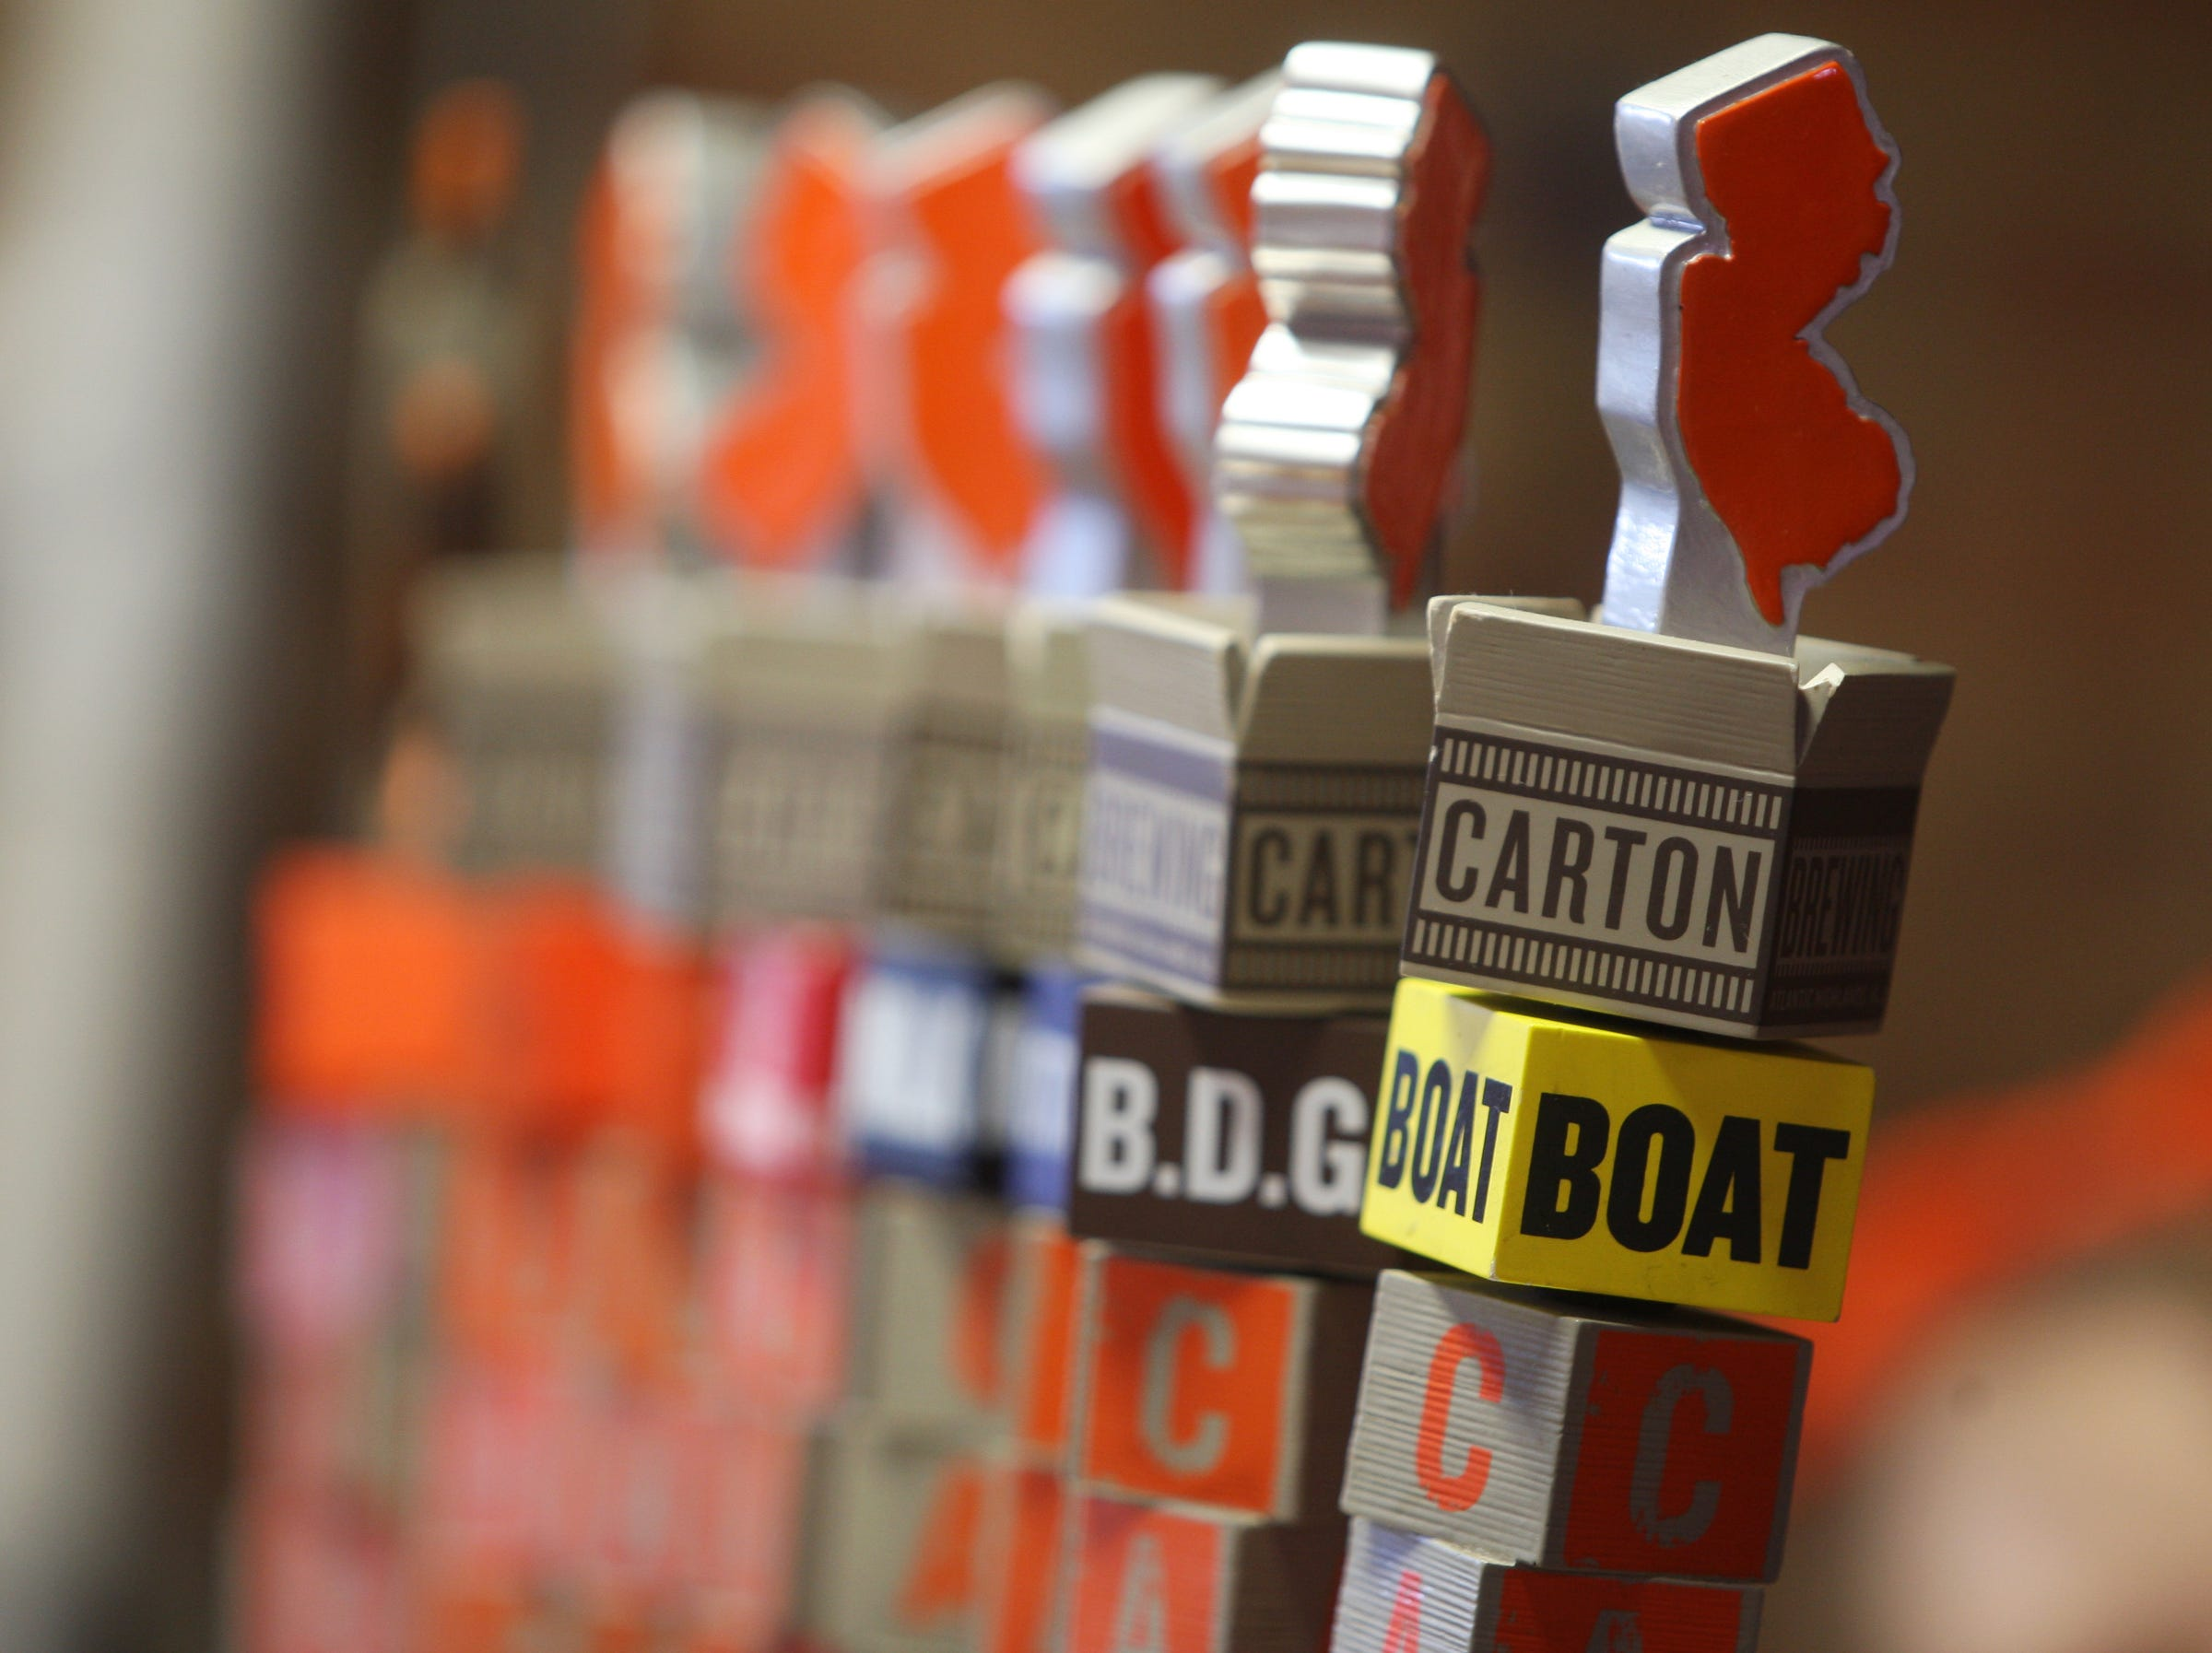 Spirits of N.J.: Carton takes over Old Bay on Wednesday